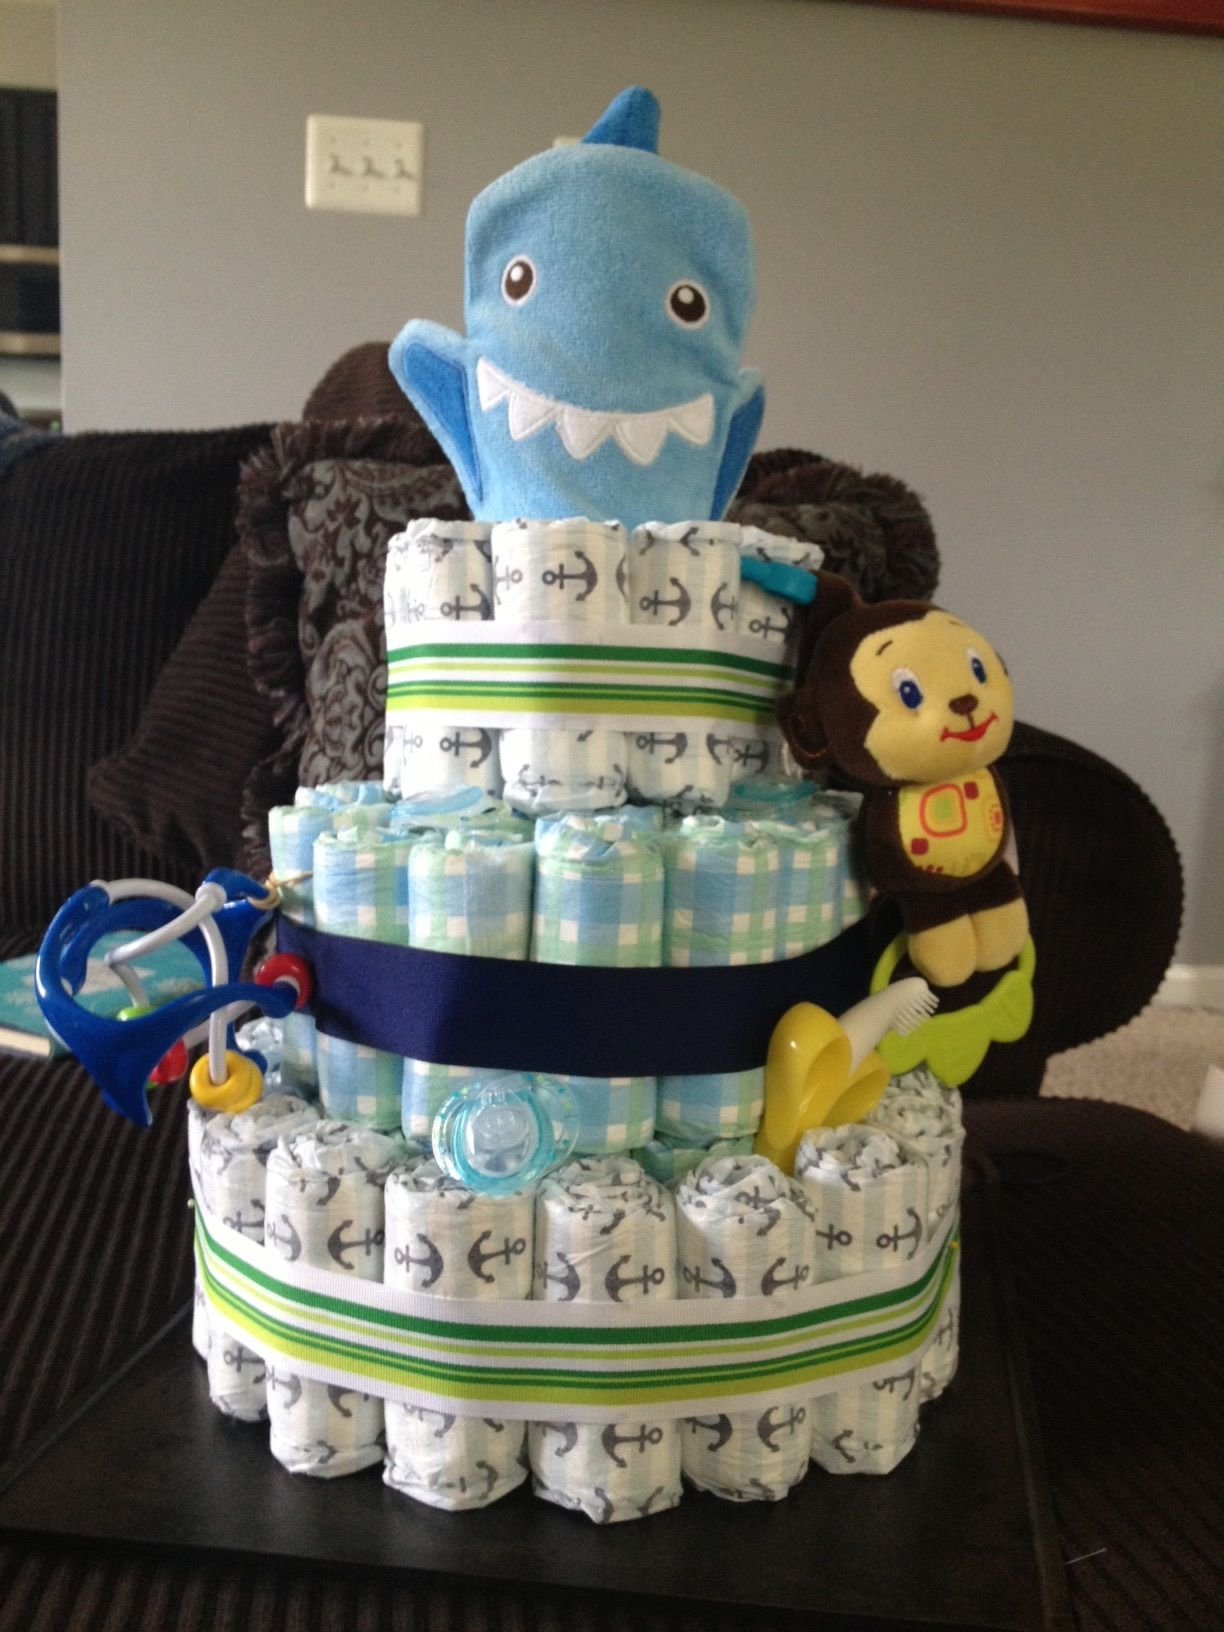 DIY Diaper Cake Tutorial with Honest Company Diapers